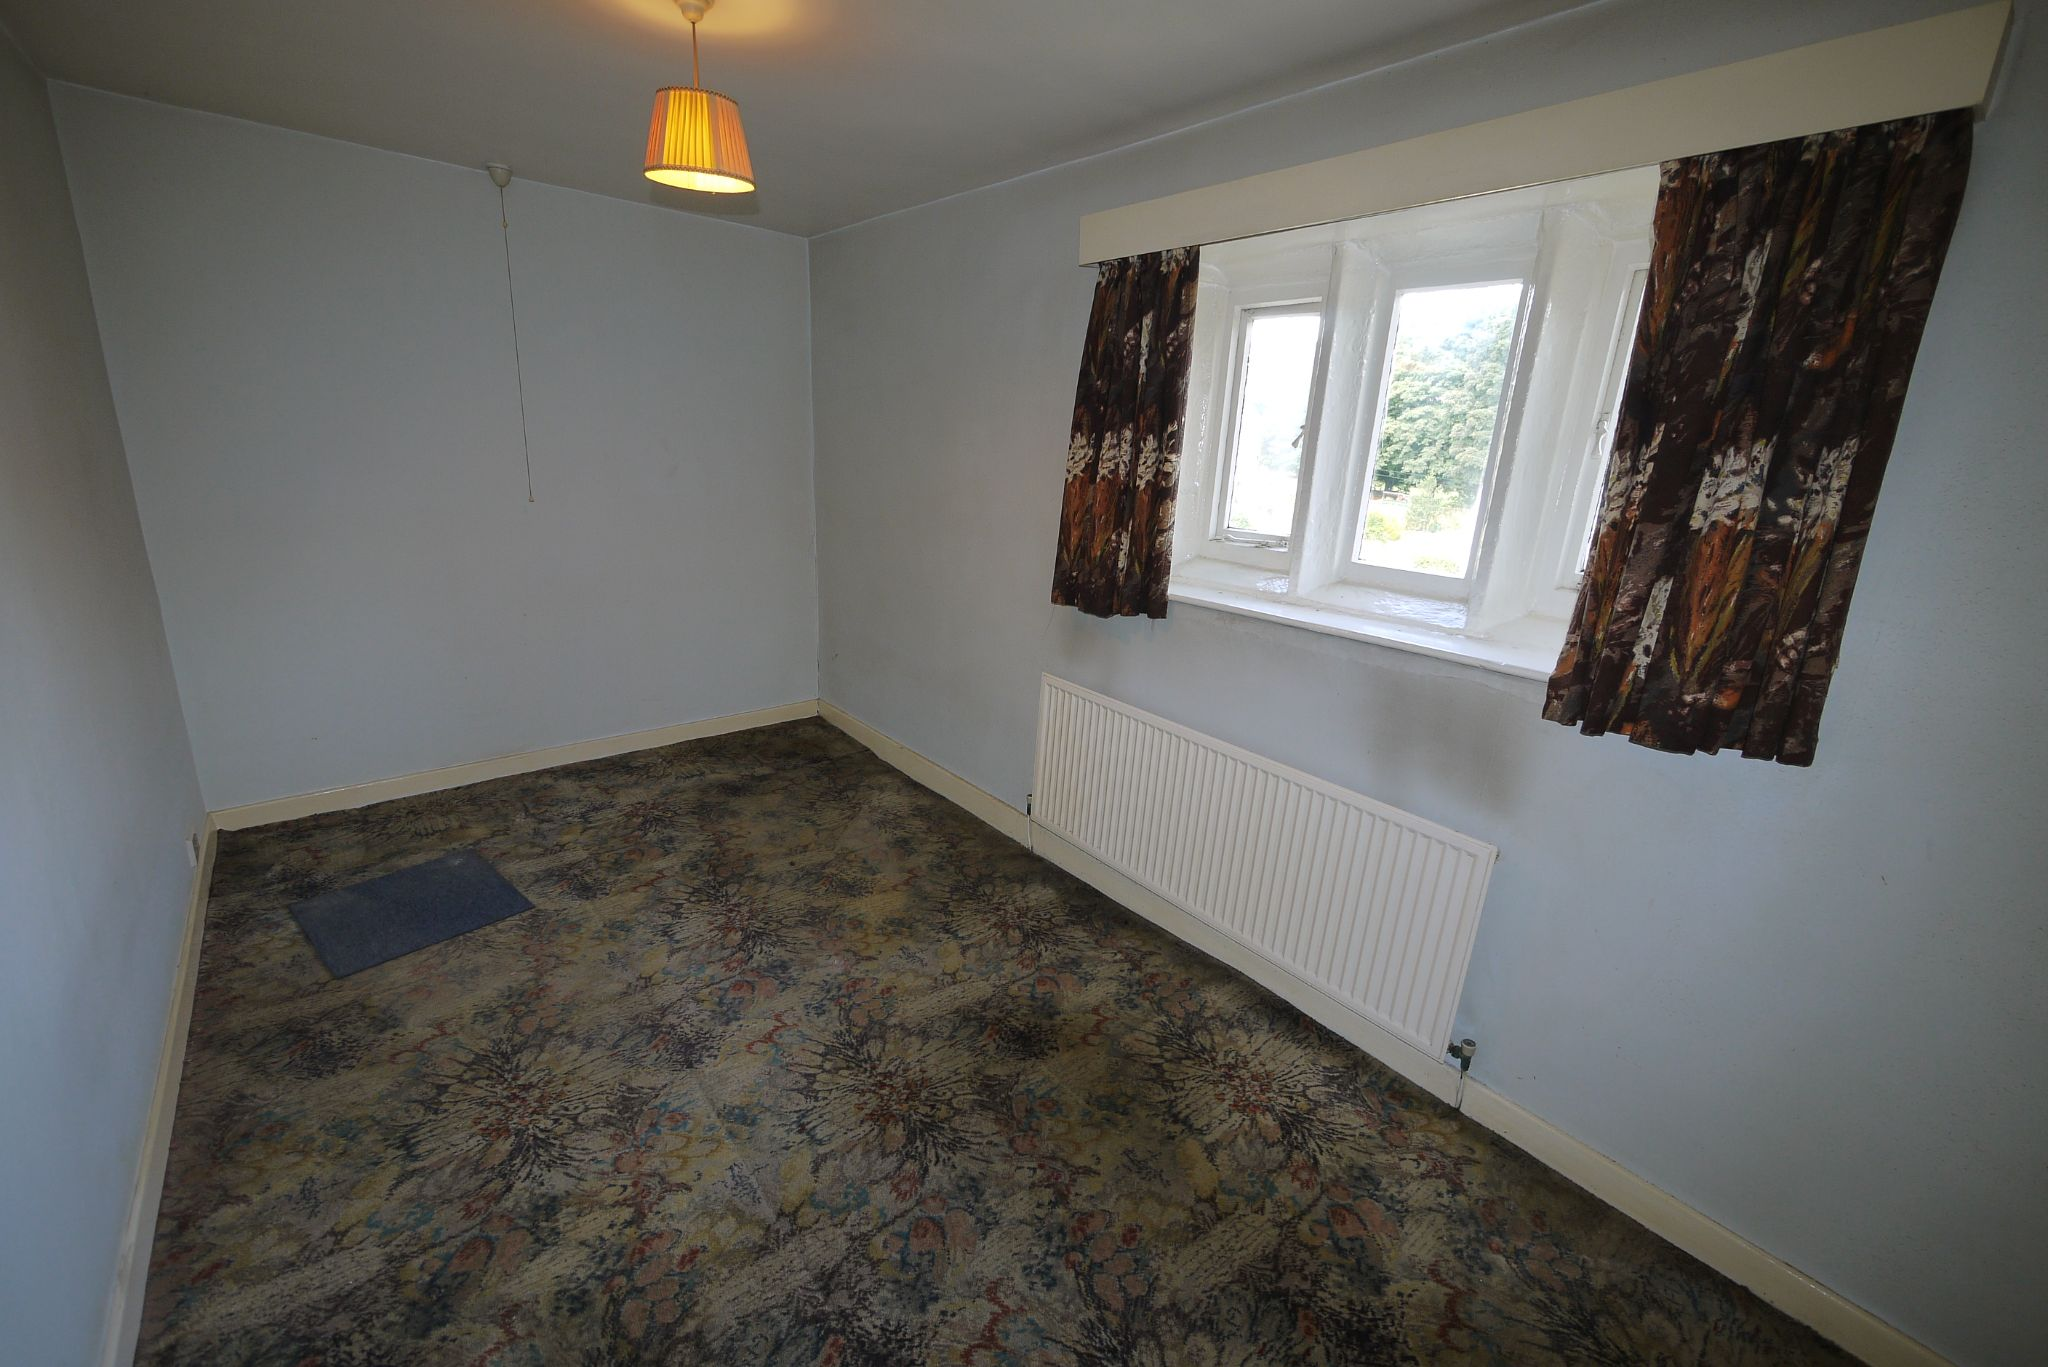 3 bedroom cottage house SSTC in Brighouse - Photograph 10.